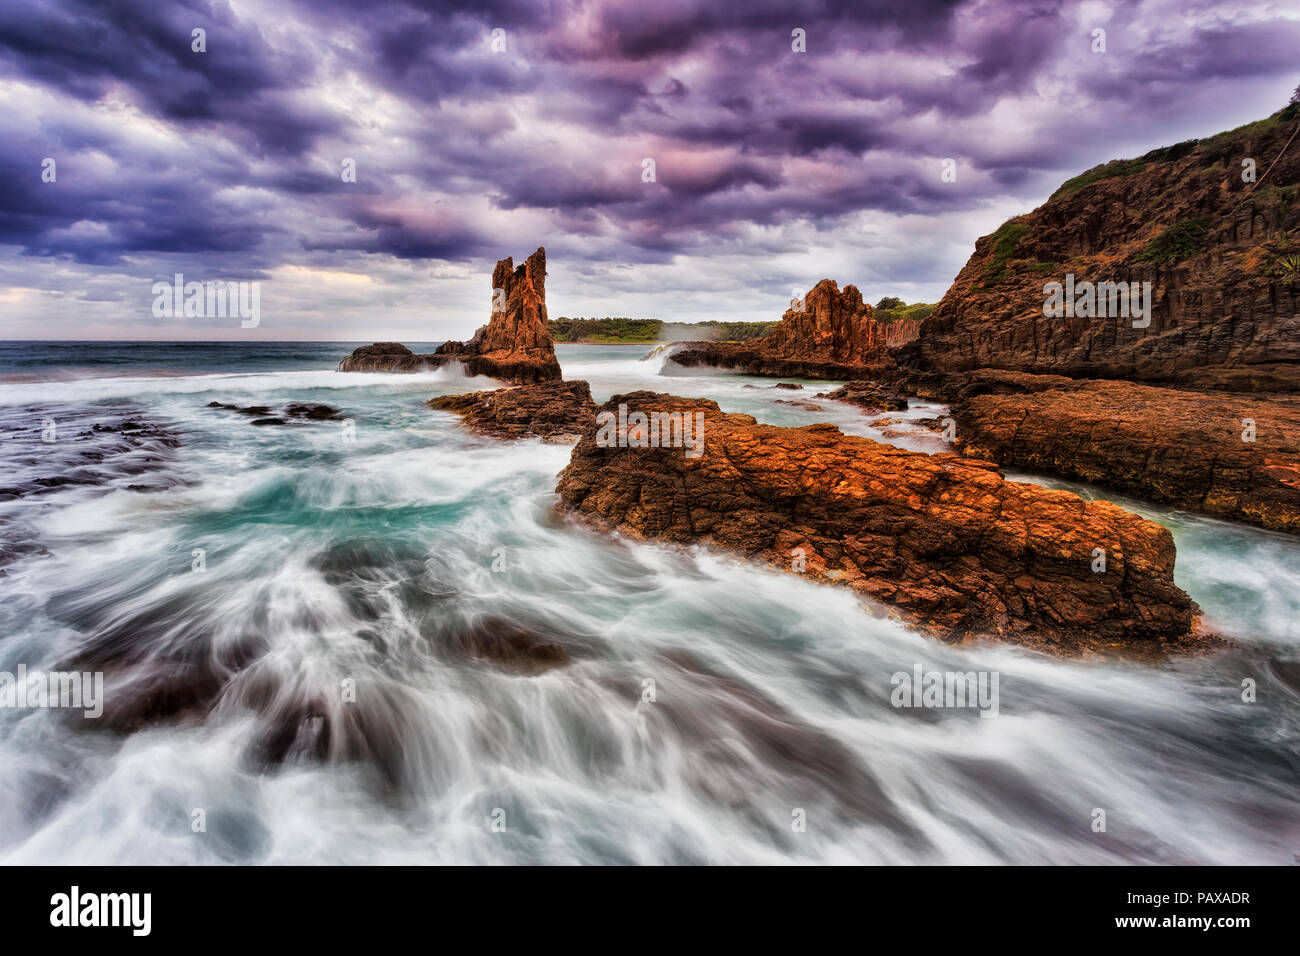 Colourful golden sandstone cathedral rocks at Bombo beach in Kiama, NSW, Australia, at stormy sunset under cloudy sky. - Stock Image